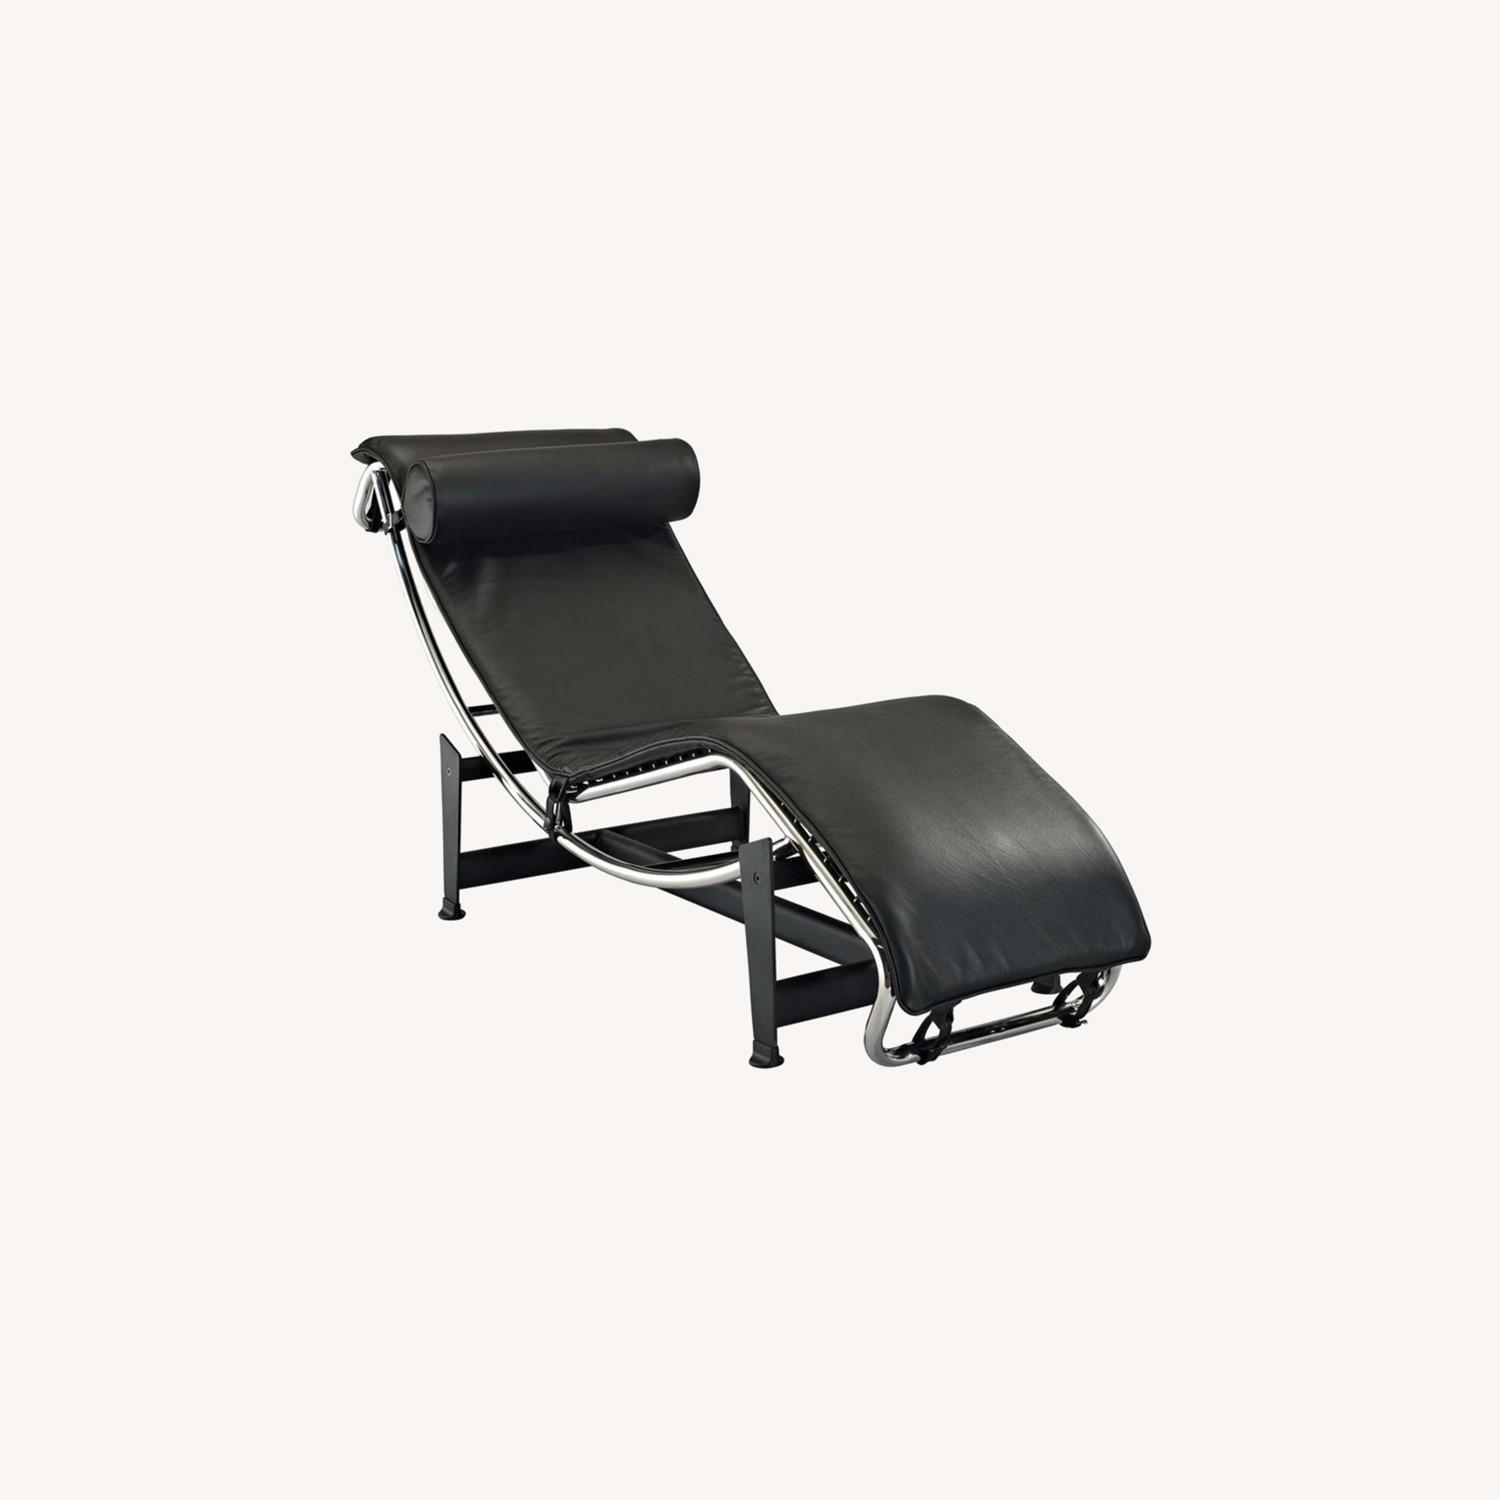 Chaise Lounge In Black Finish W/ Reclining Design - image-5